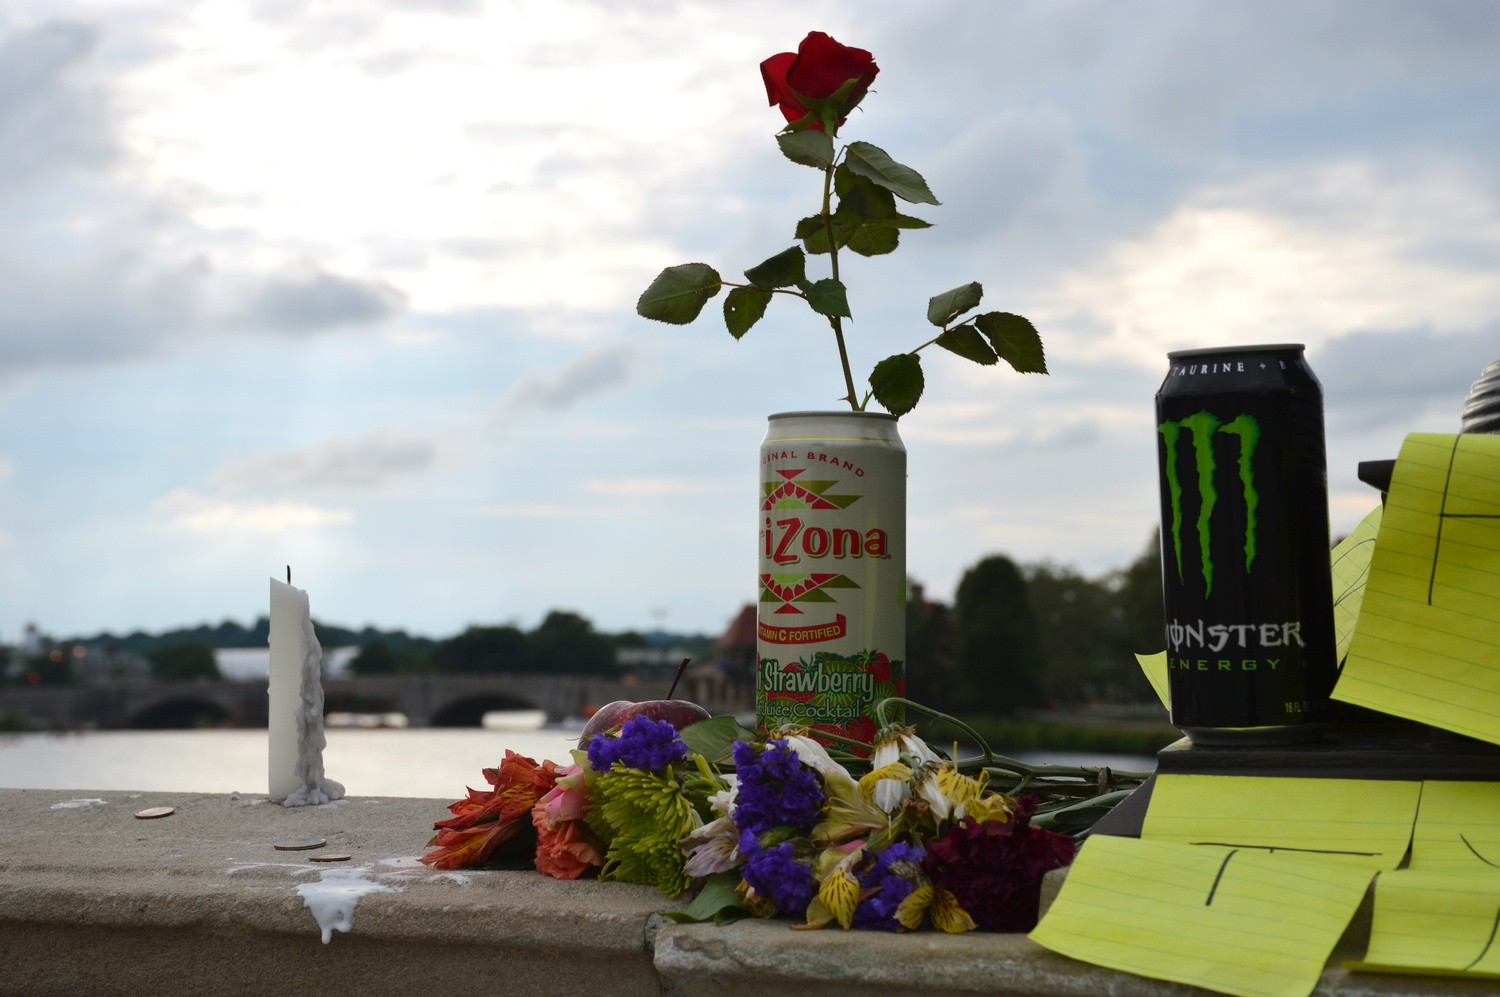 Students left notes, candles, flowers, red apples and several cans of kiwi-strawberry Arizona iced tea on Weeks Footbridge in memory of Tyler S. Greene, who drowned Friday night. The iced tea was, according to a fellow student who wished to remain anonymous, Greene's favorite drink.